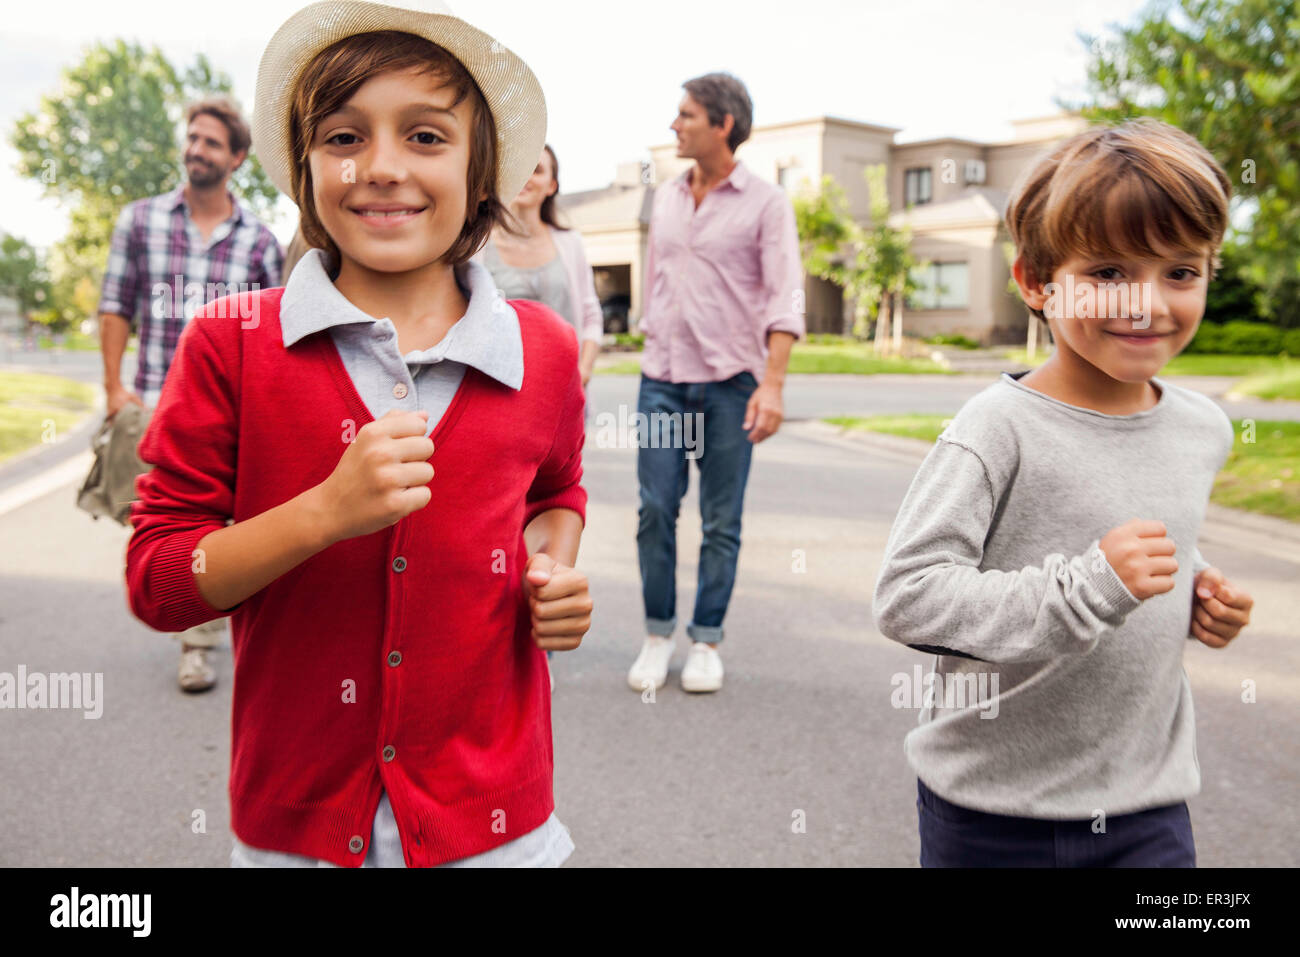 Boys running outdoors, family in background - Stock Image